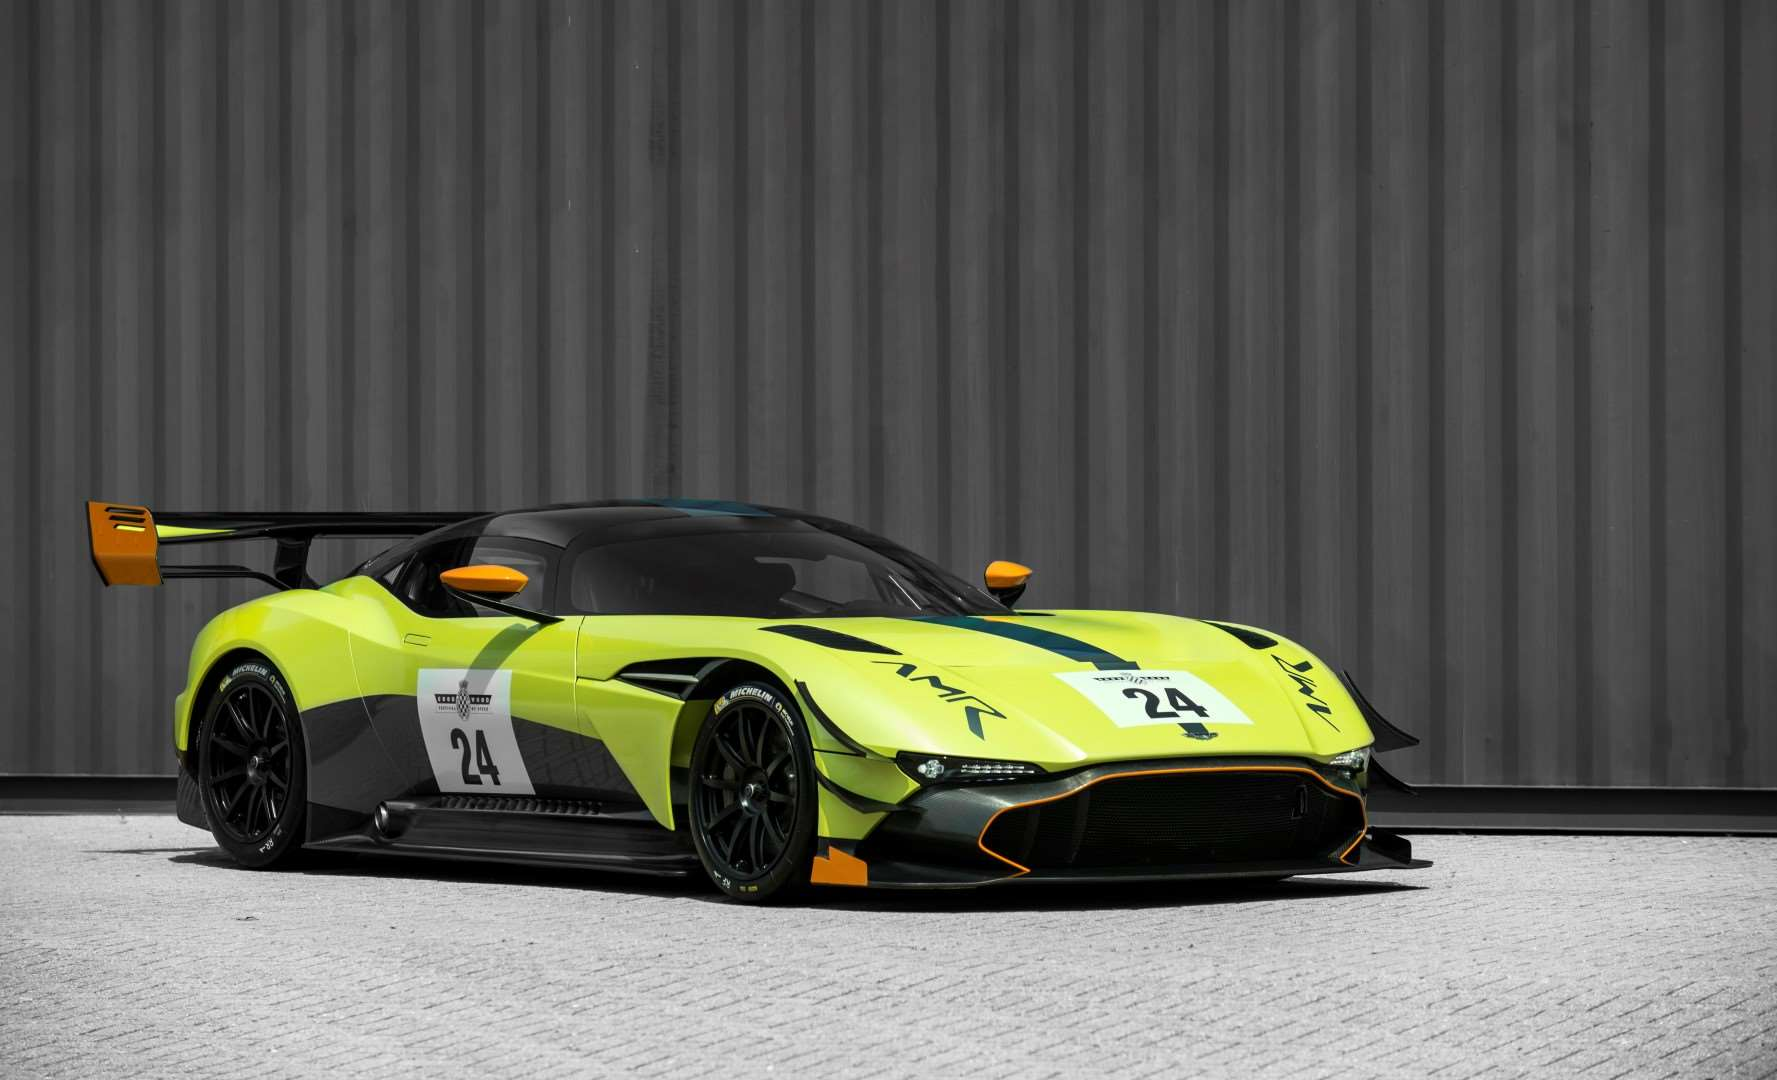 Aston Martin Vulcan AMR Pro - wildest-ever Aston Martin taken to new extremes